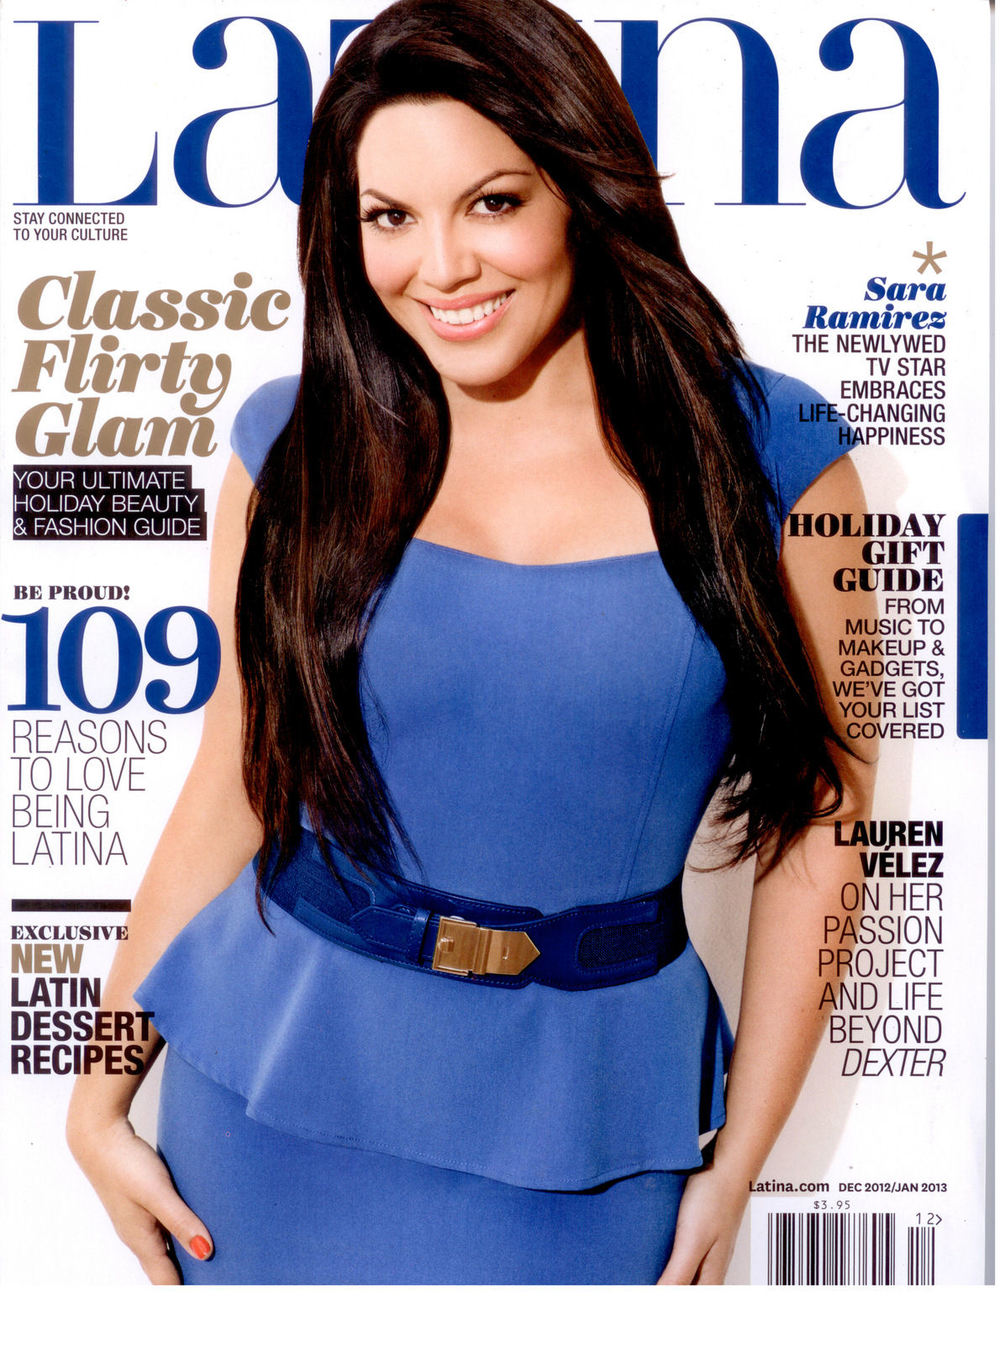 Latina Magazine Press hit.jpg